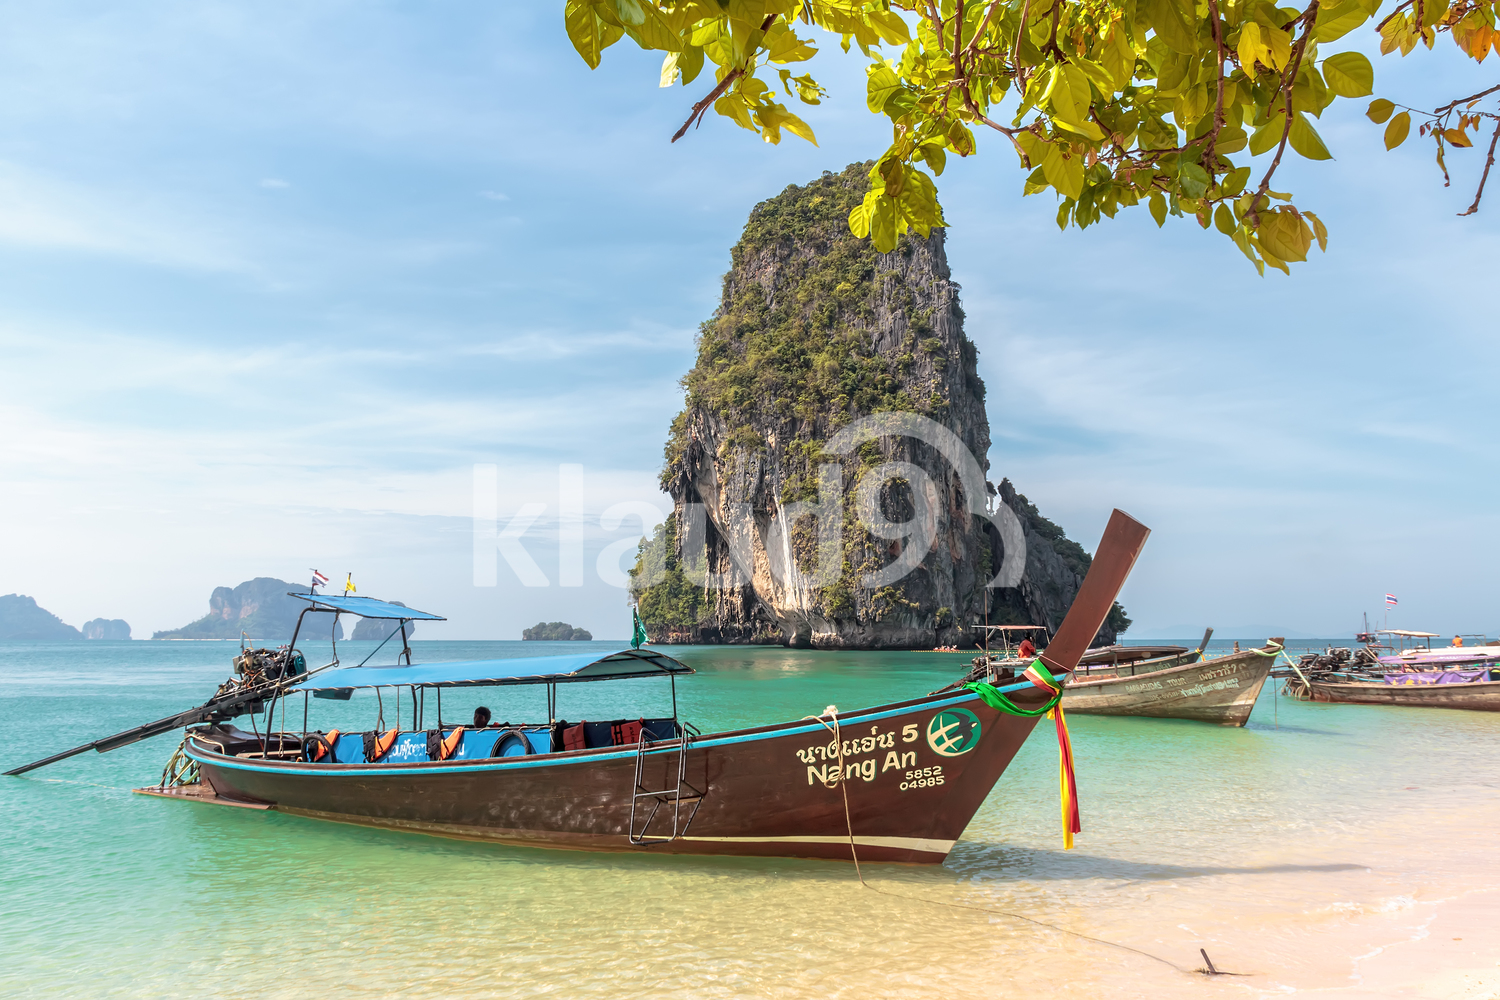 Kingdom of Thailand. Traditional Thai longtail boats. Krabi Province, Railay Peninsula, Phranang Cave Beach